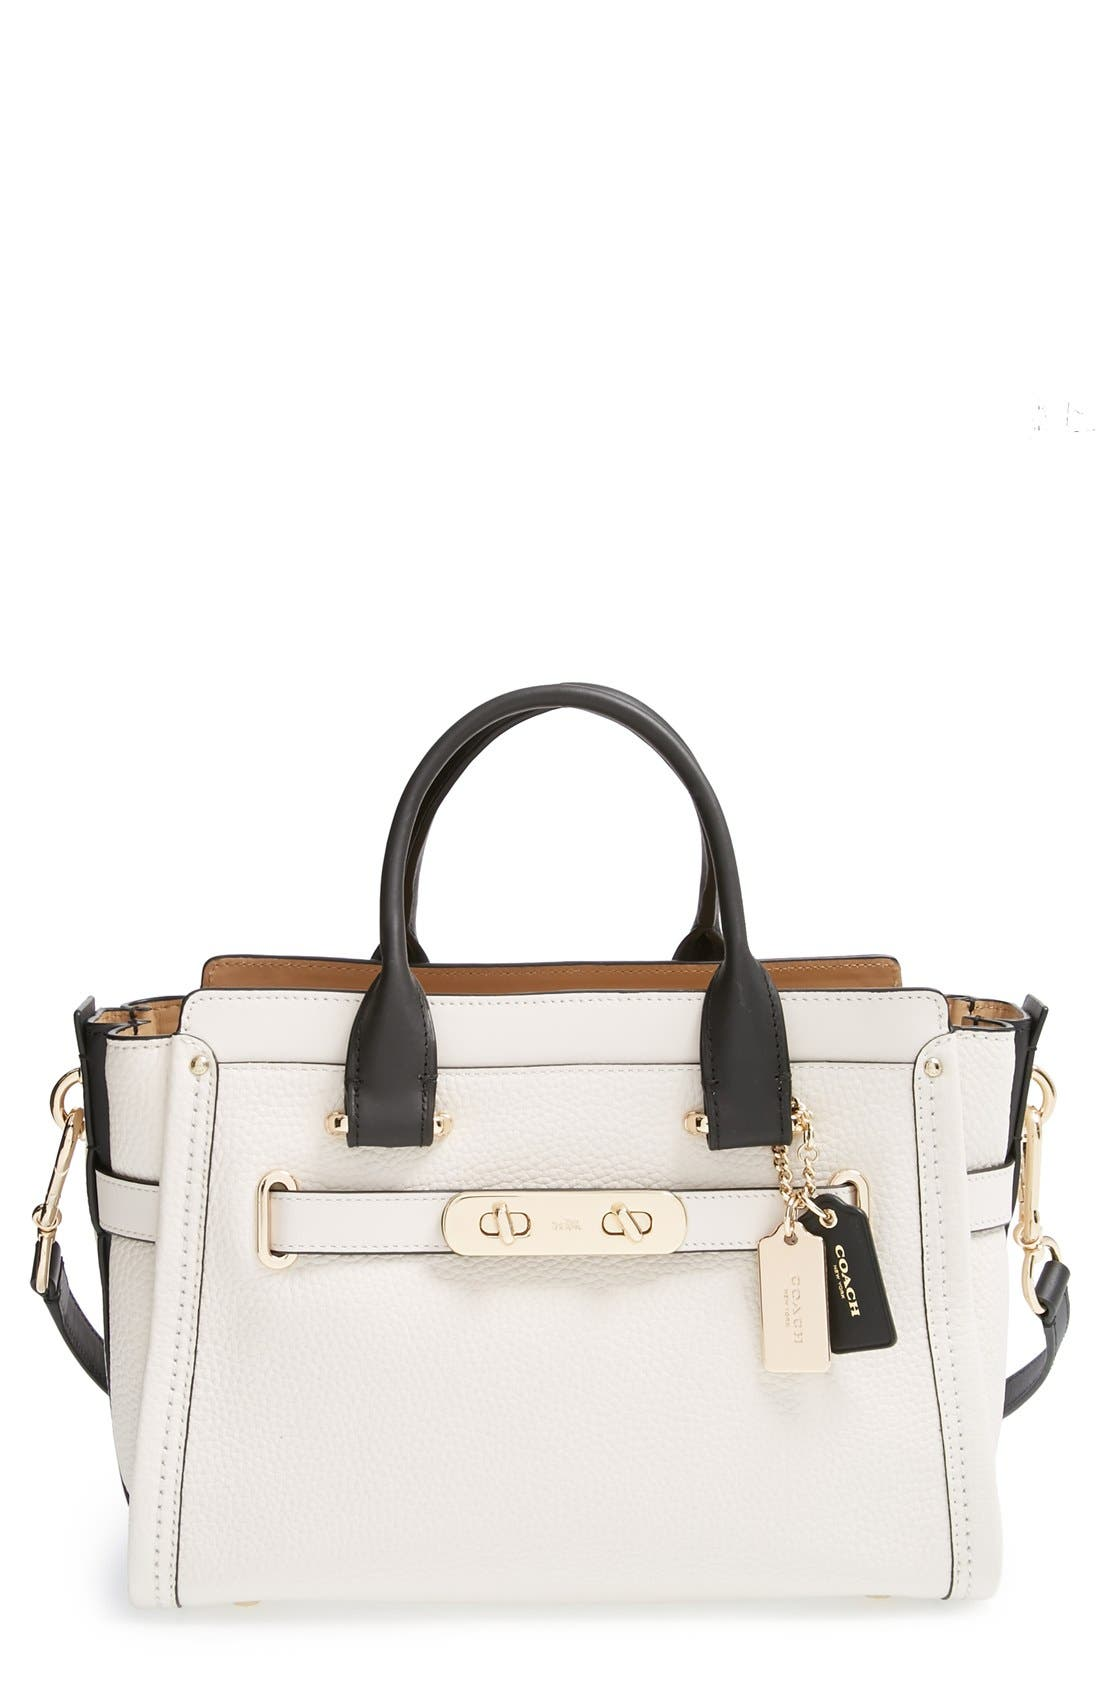 'Swagger 35' Colorblock Leather Satchel,                             Main thumbnail 1, color,                             178